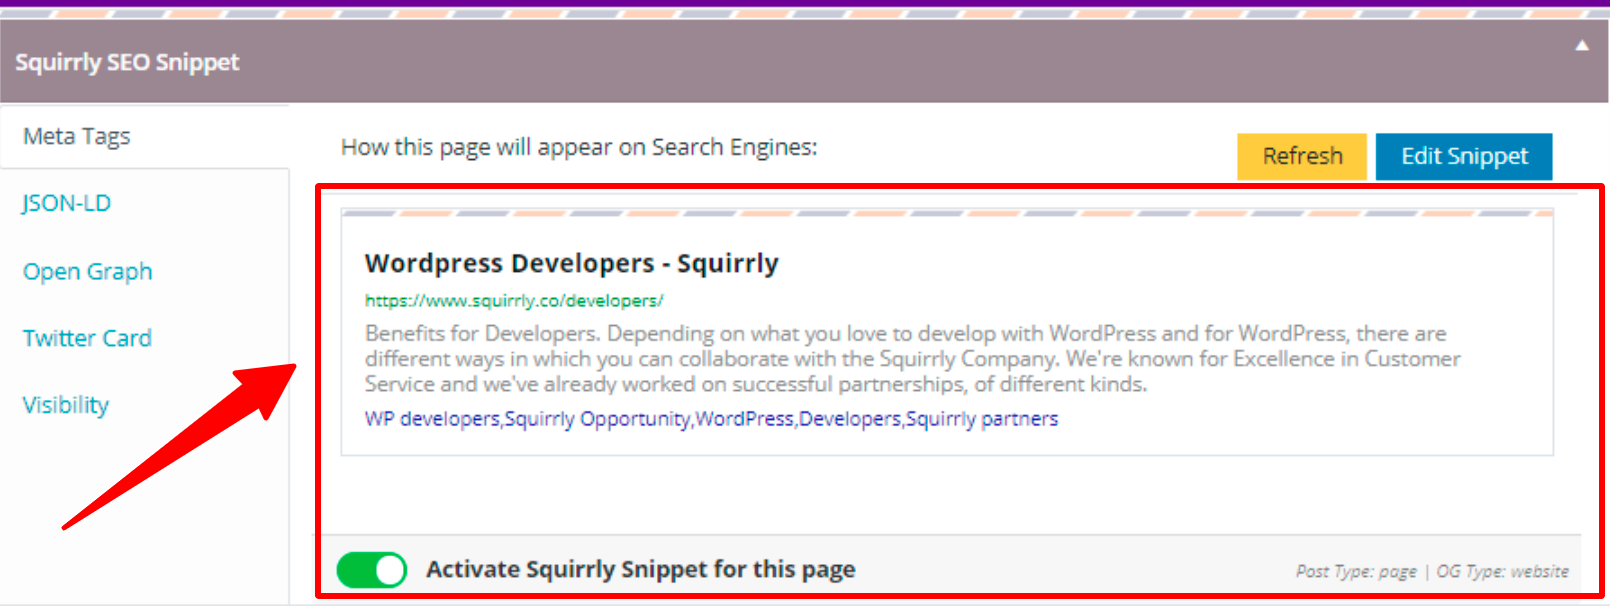 SEO Snippet Tool - Squirrly SEO